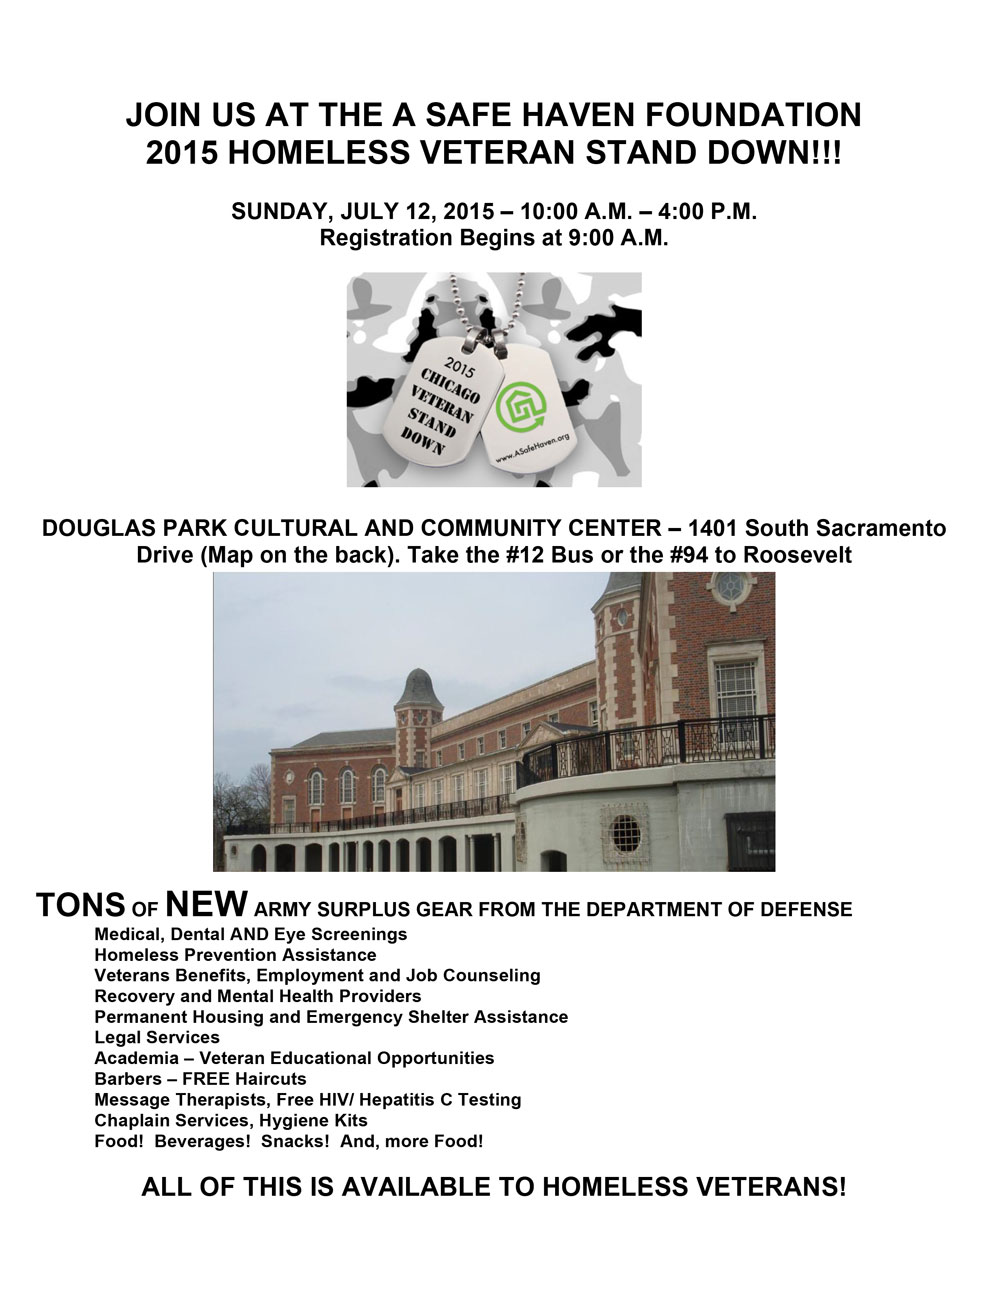 safe_haven_2015_stand_down_flyer_f